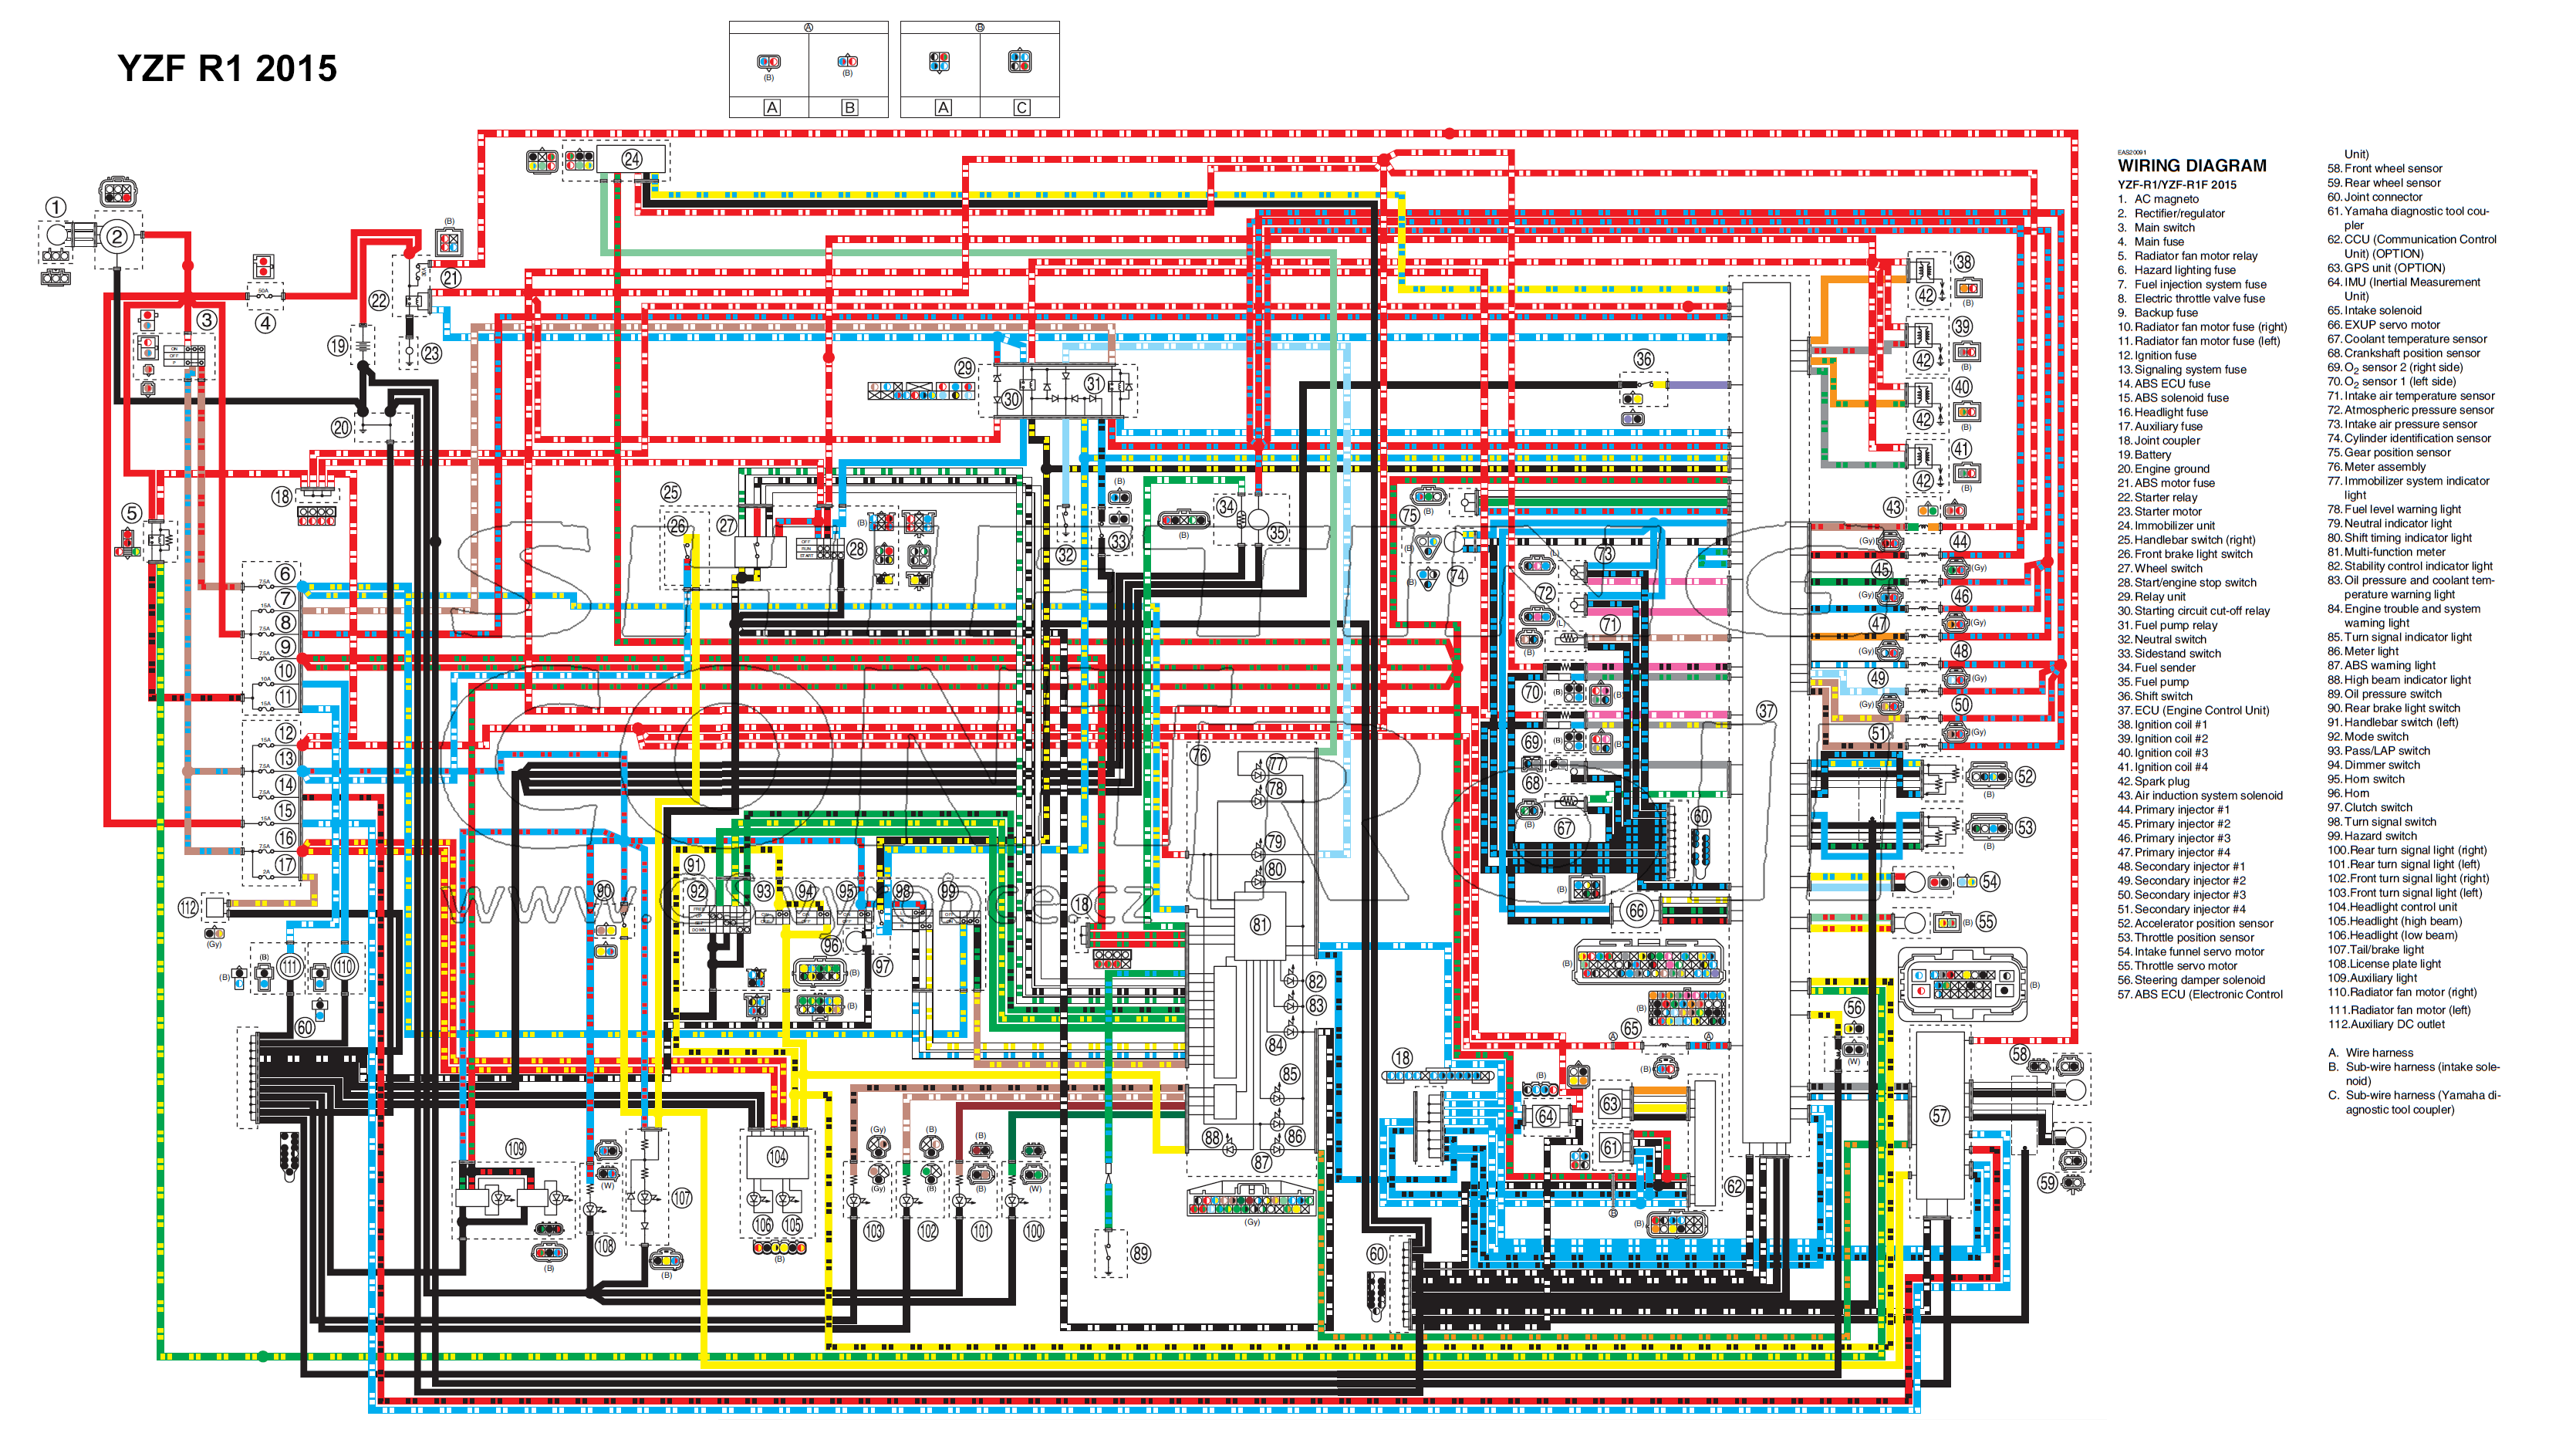 wiring diagrams wiring schematic for 2004 r1 #4